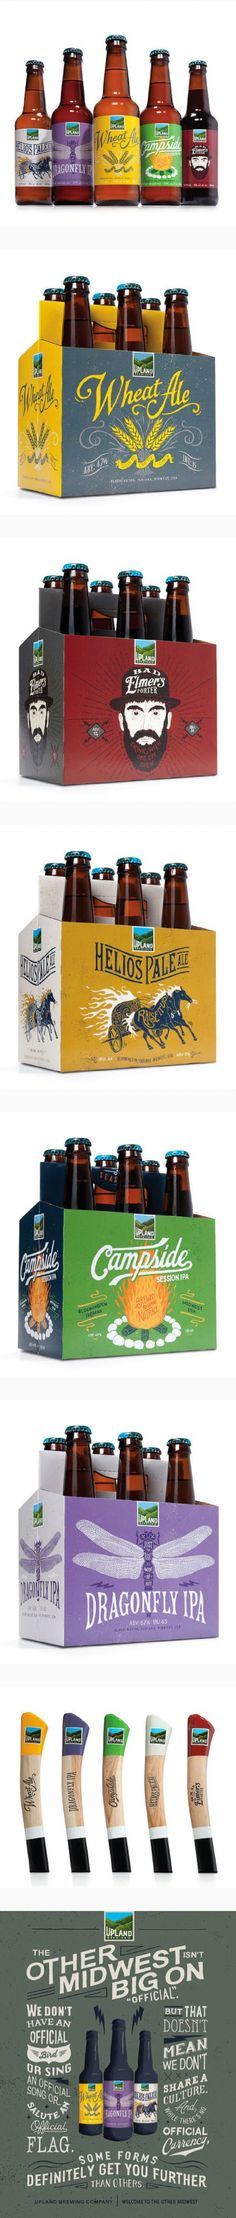 Upland Brewing Co. by Young & Laramore